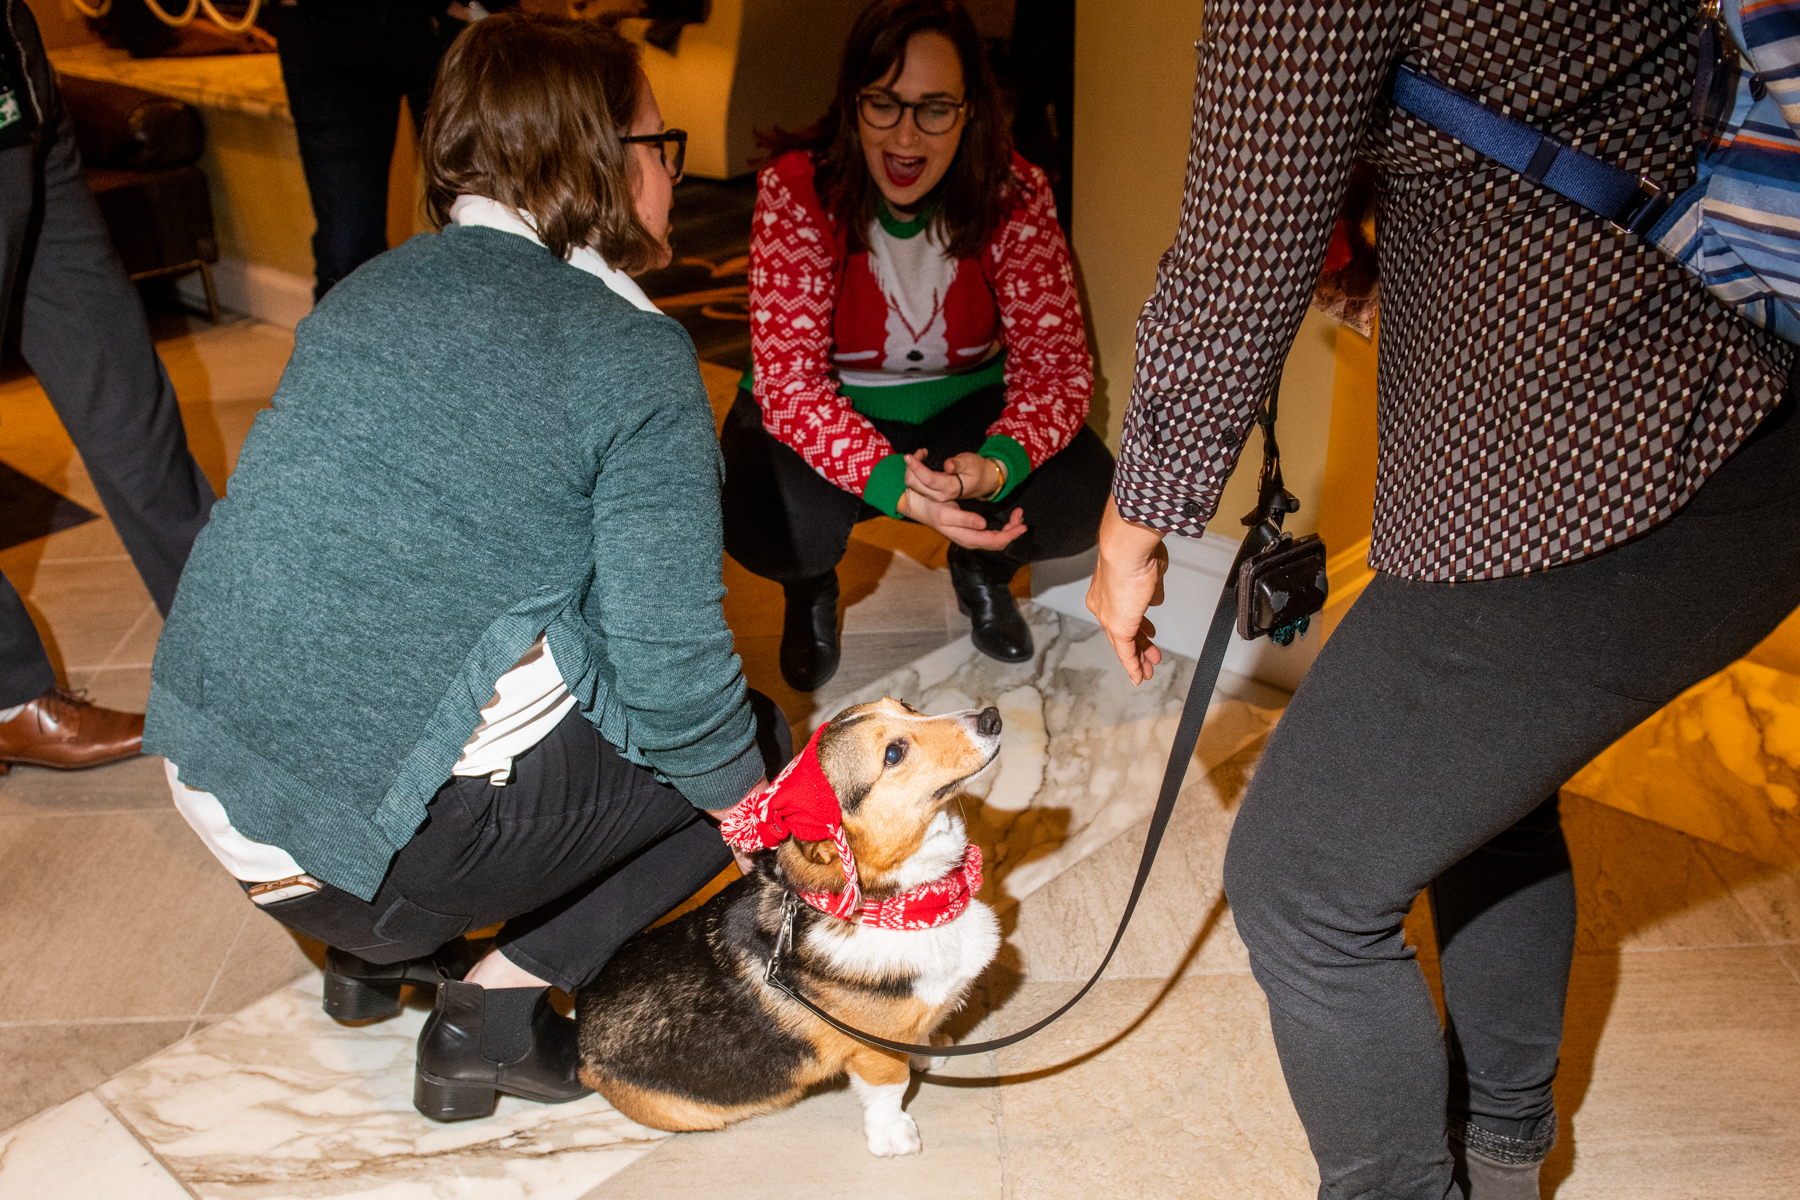 In the spirit of the holidays, Hotel Monaco hosted a howlin' good doggie holiday party last night. Festivities included photo opps with Santa, treats from Seattle's very own Barkery and a special appearance by Insta-famous pooch Scout, the hugging Golden Retriever. The Seattle Humane Society was also{ } on site mingling about with dogs up for adoption.{ } Click on for a formidable collection of adorable dog sweaters from the swanky seasonal soiree. (Image: Chona Kasinger / Seattle Refined)